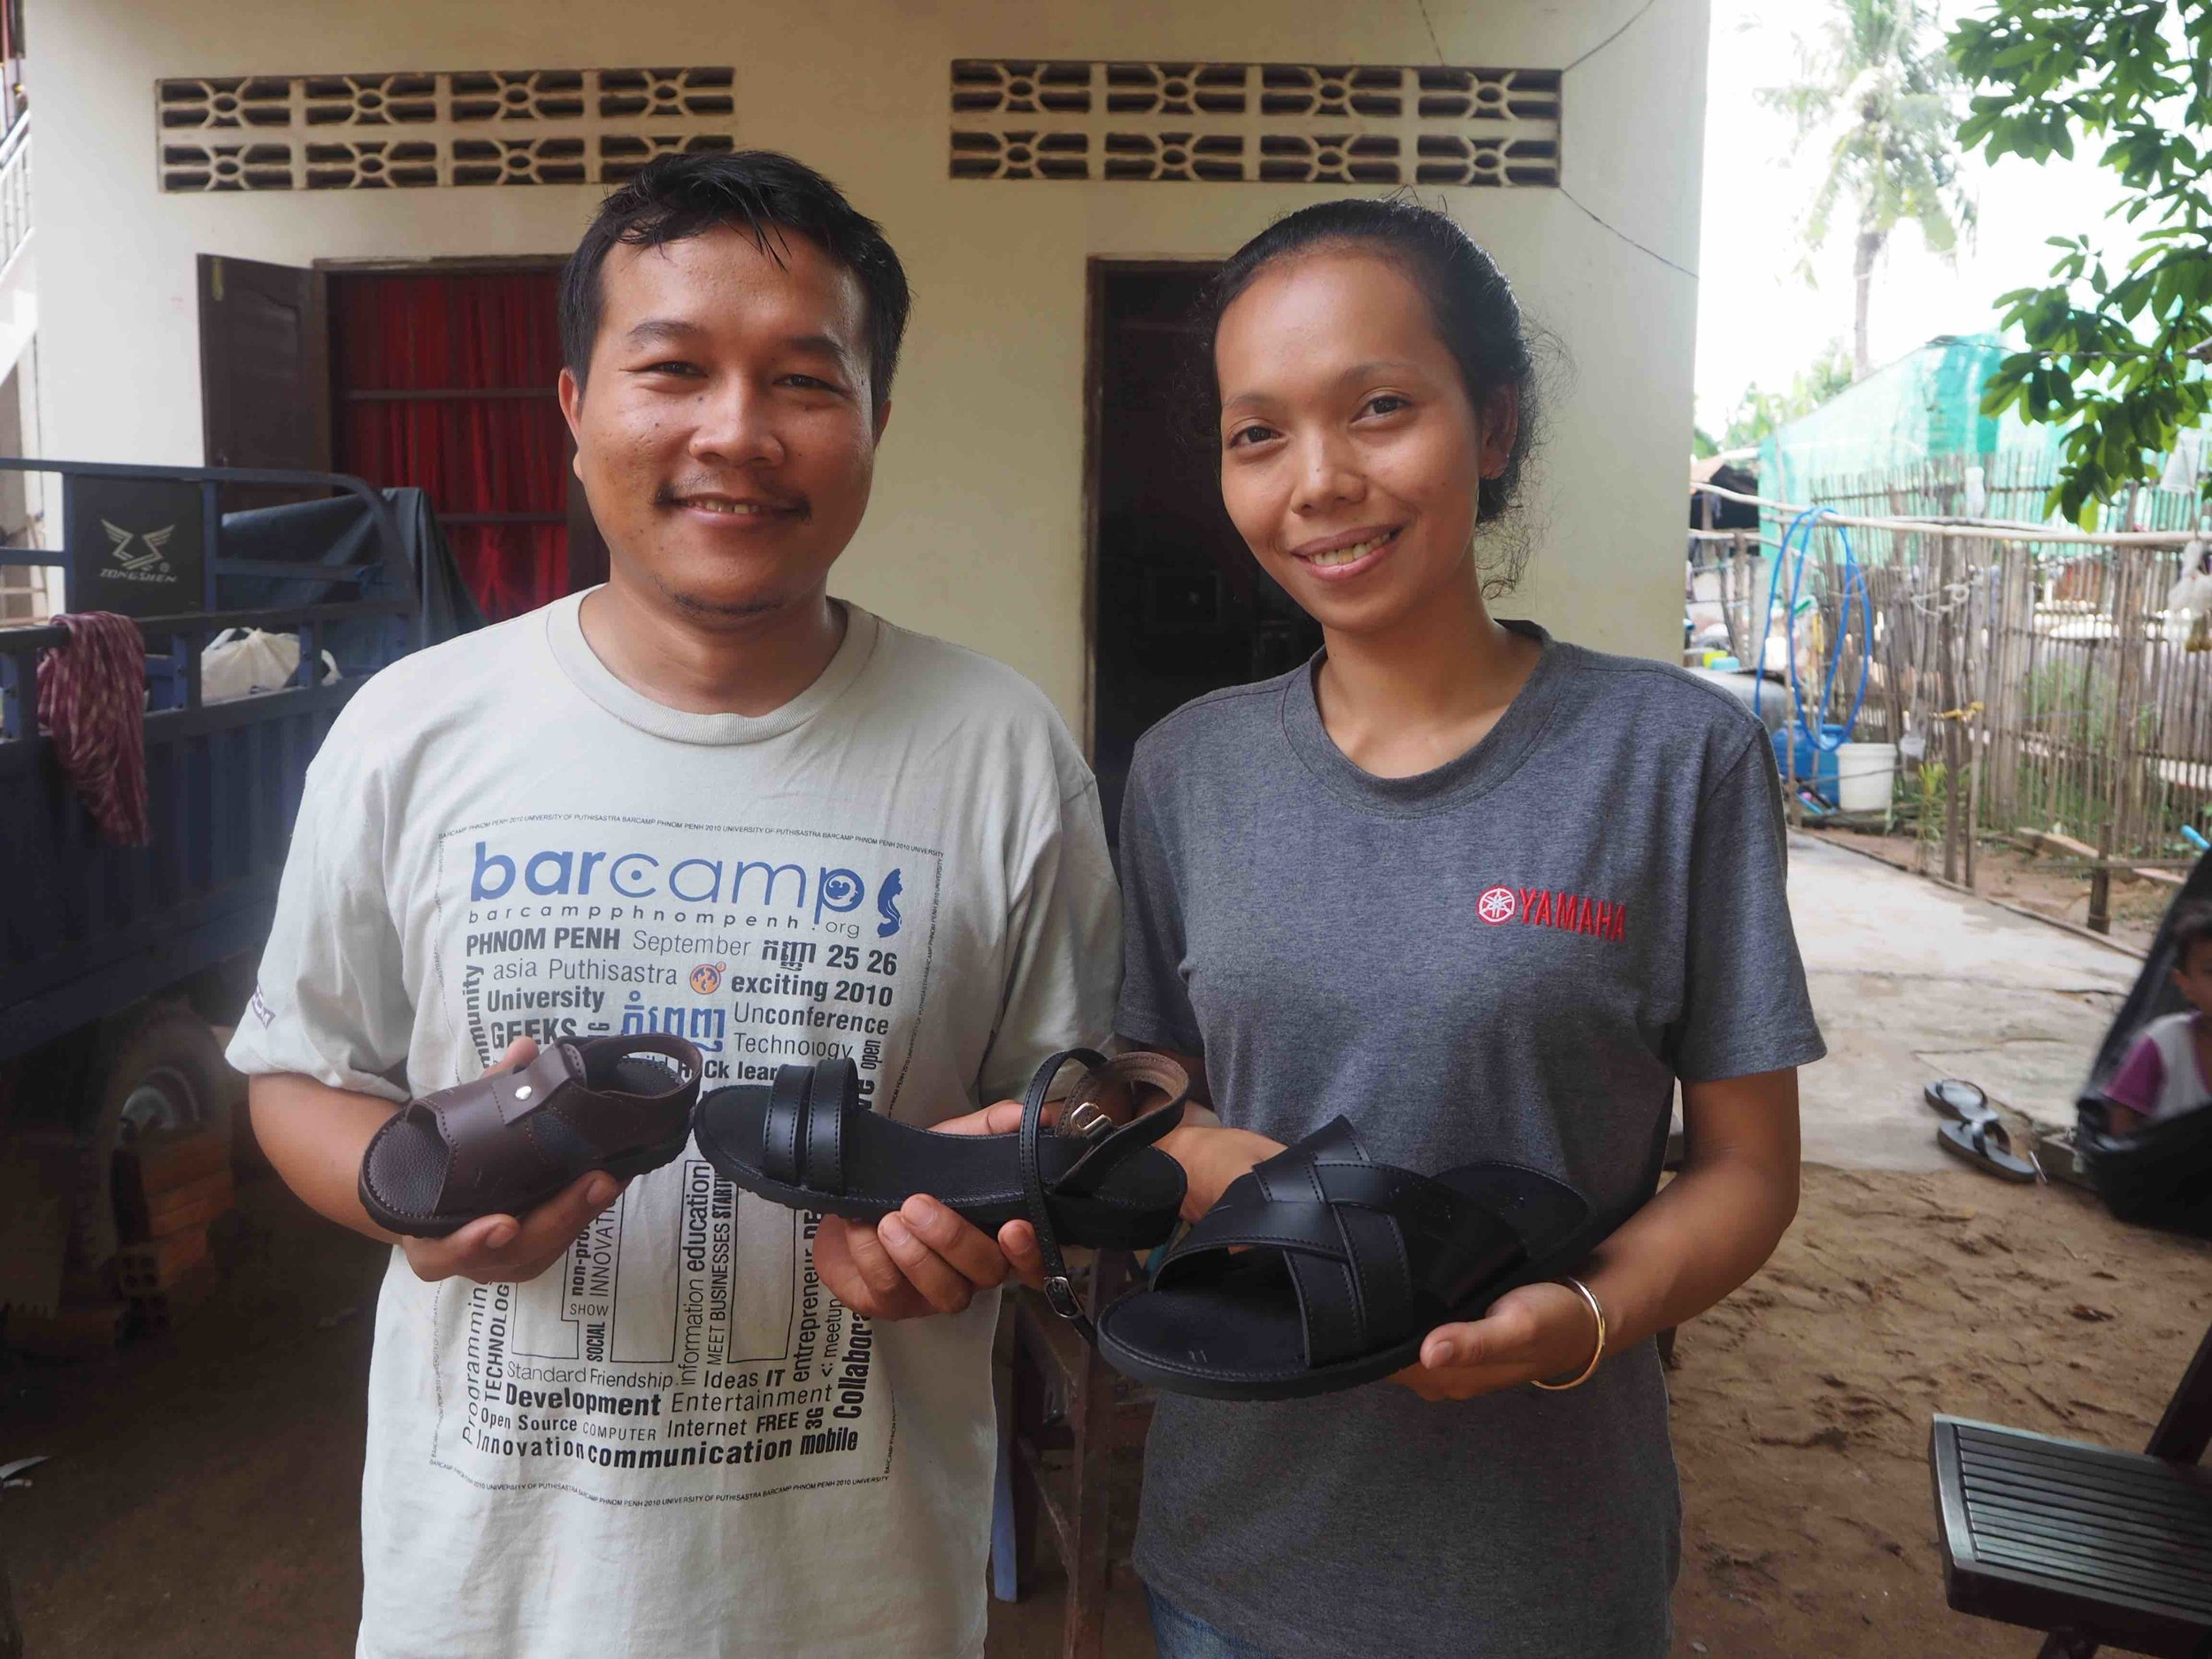 Khmer Corporation Shoe    Loan:  Machines to increase production of shoes, create new jobs, and provide shoes to disadvantaged families in their local community